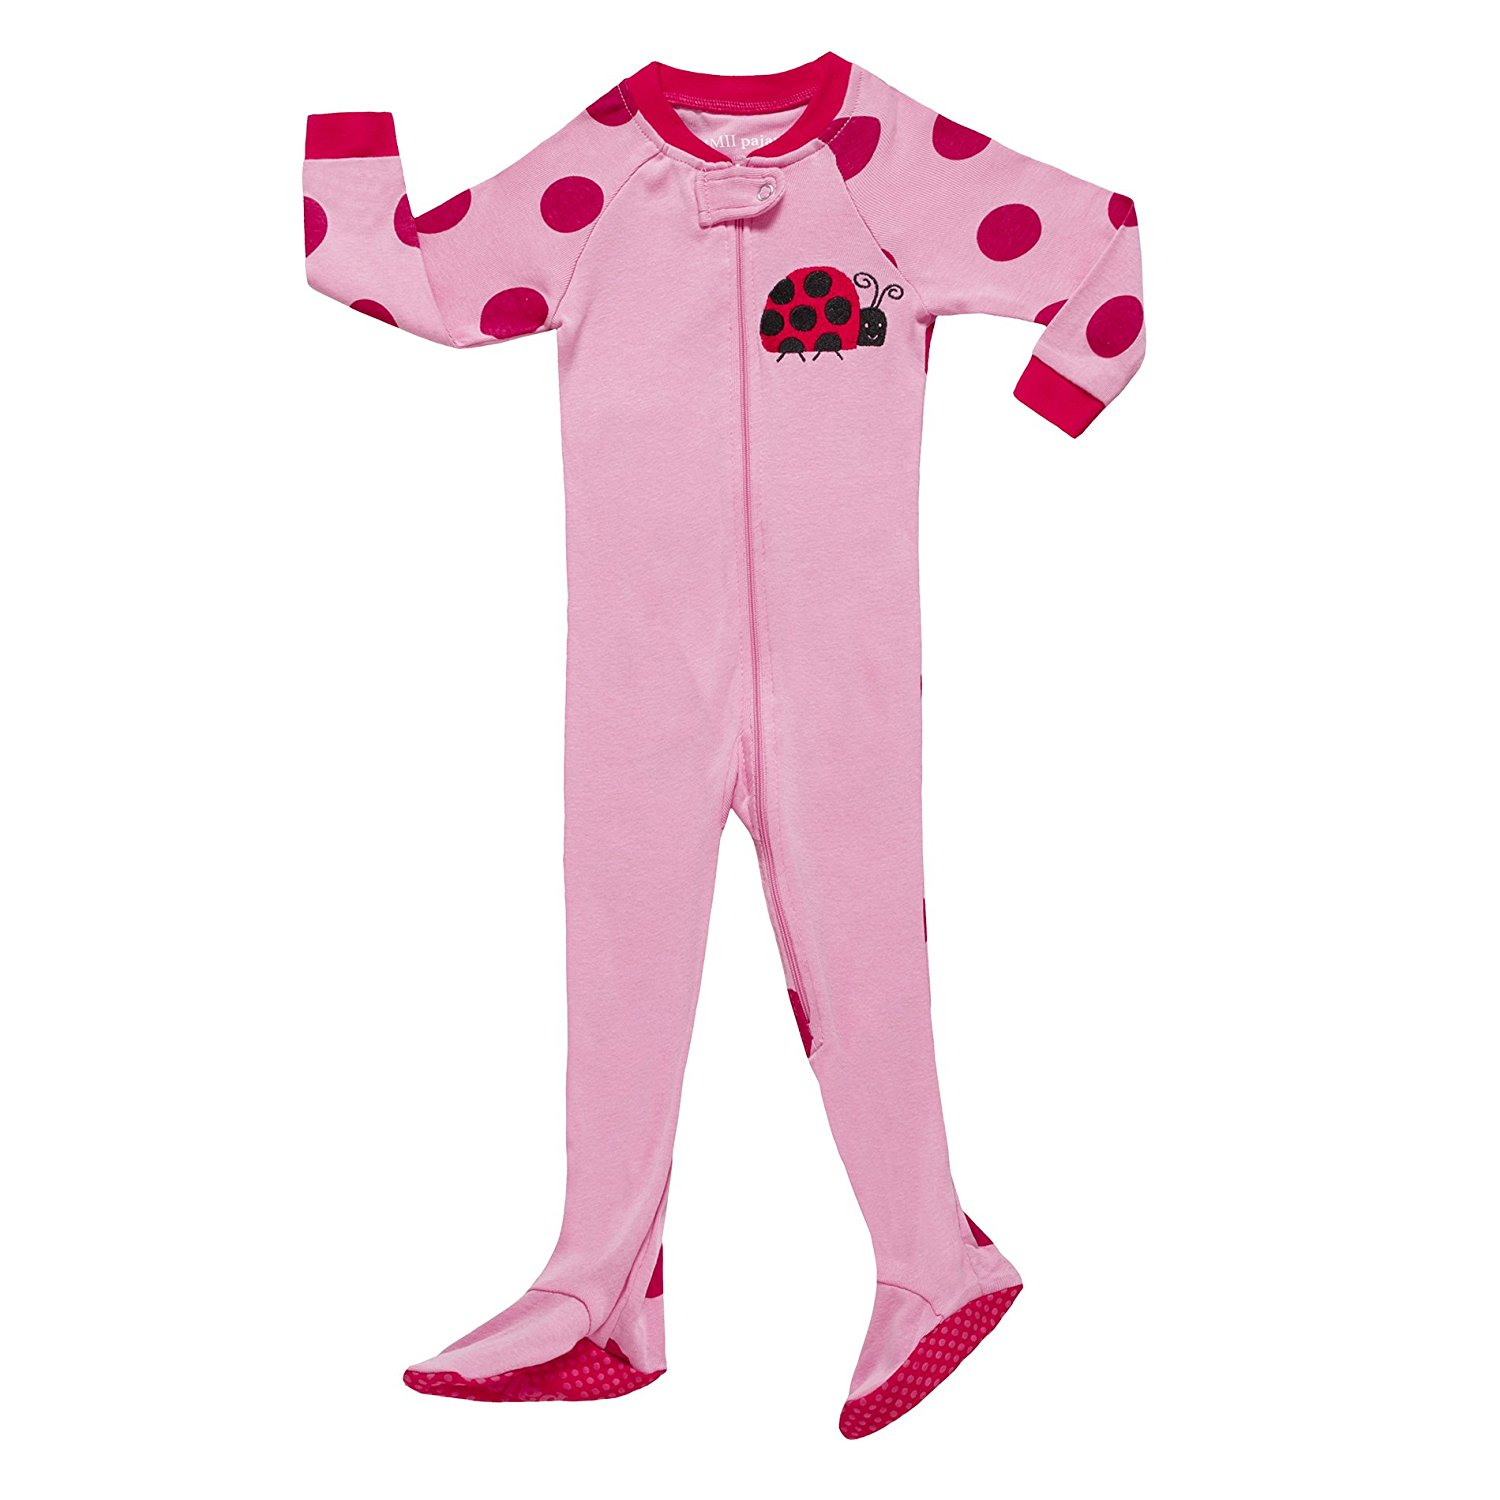 3a514a44ce Get Quotations · MMII pajamas Little Baby Girls Footed Pajama Sleeper 100% Cotton  Pjs Size 6M-5T